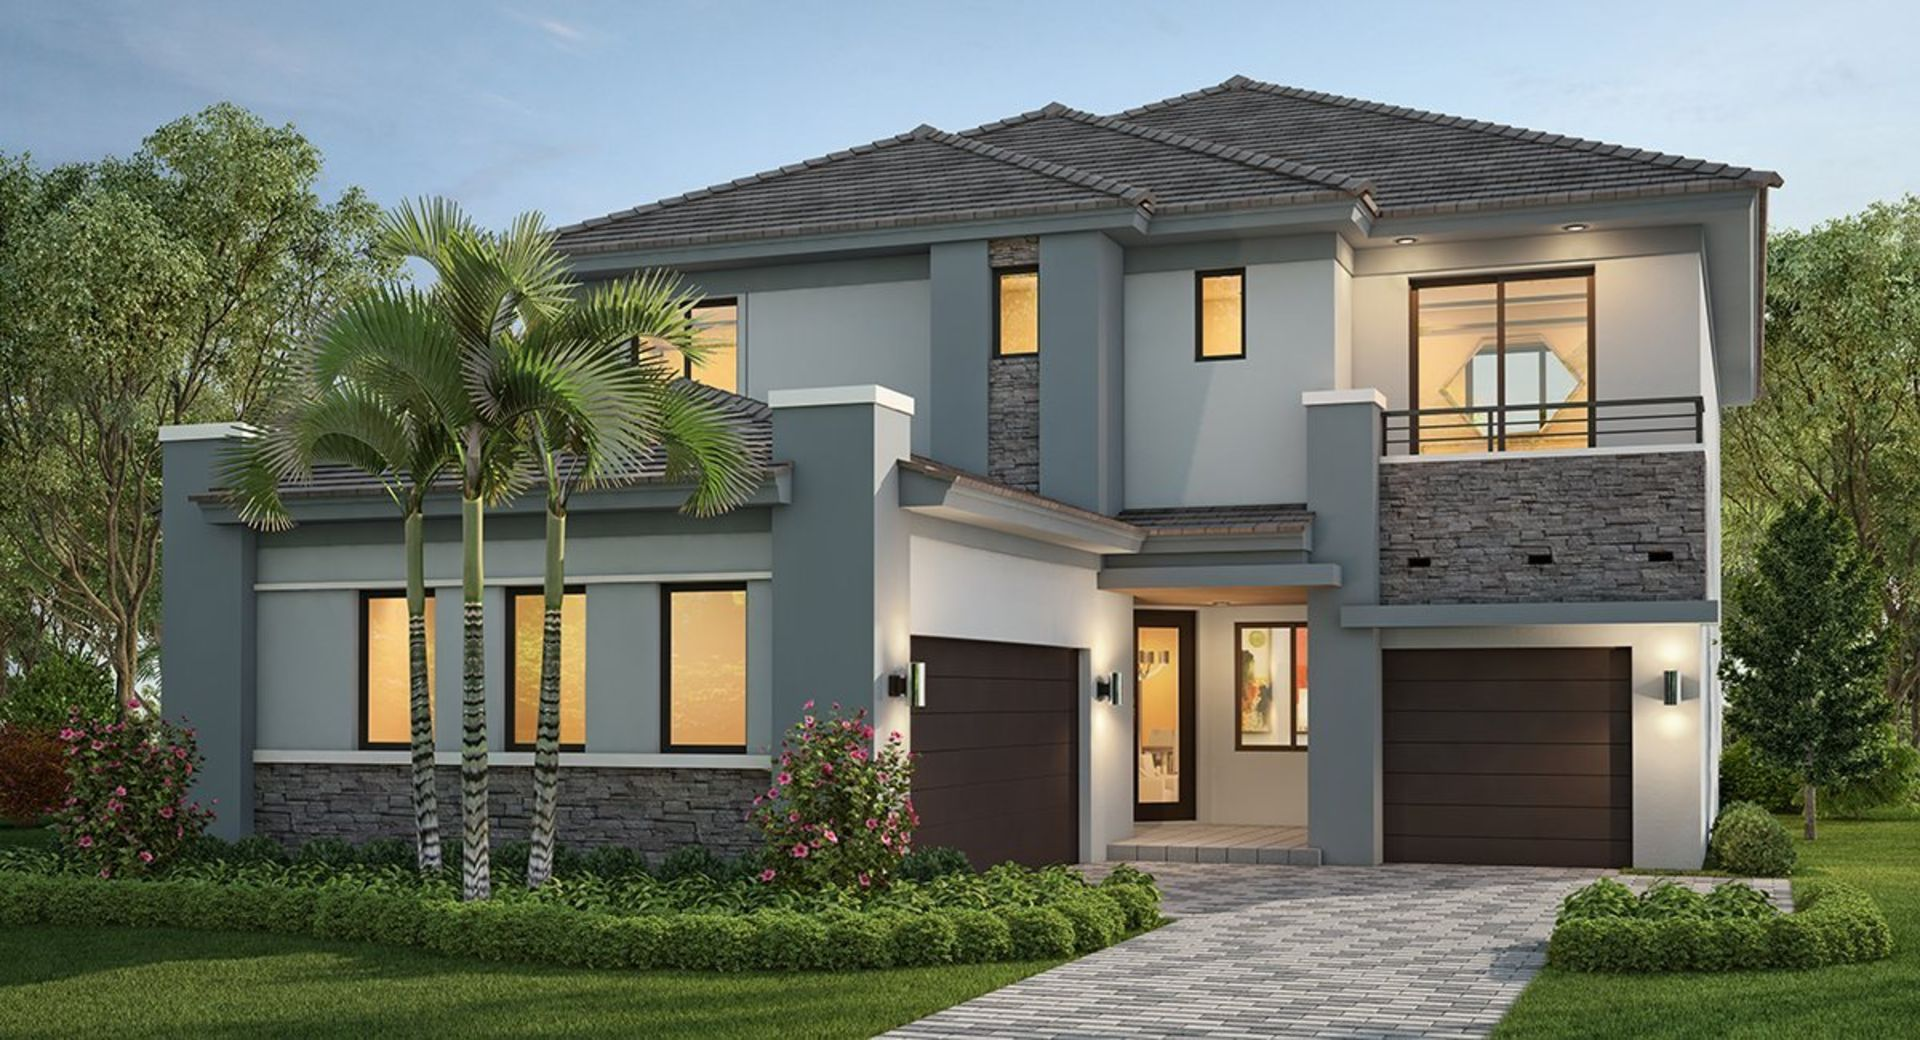 Cascata at Miralago Homes for Sale